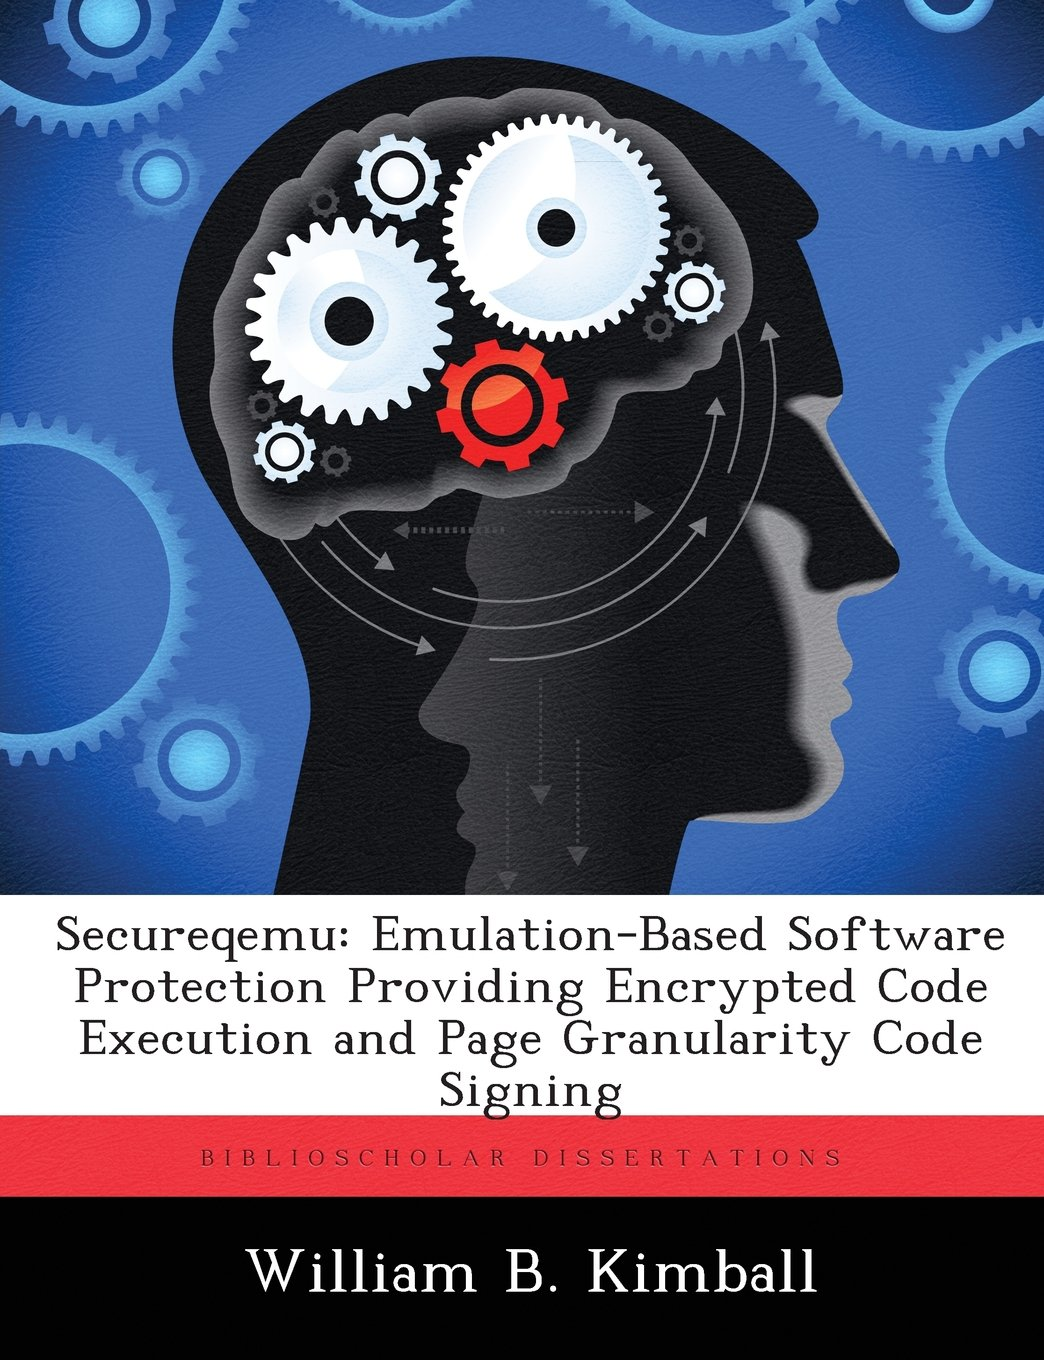 Read Online Secureqemu: Emulation-Based Software Protection Providing Encrypted Code Execution and Page Granularity Code Signing PDF